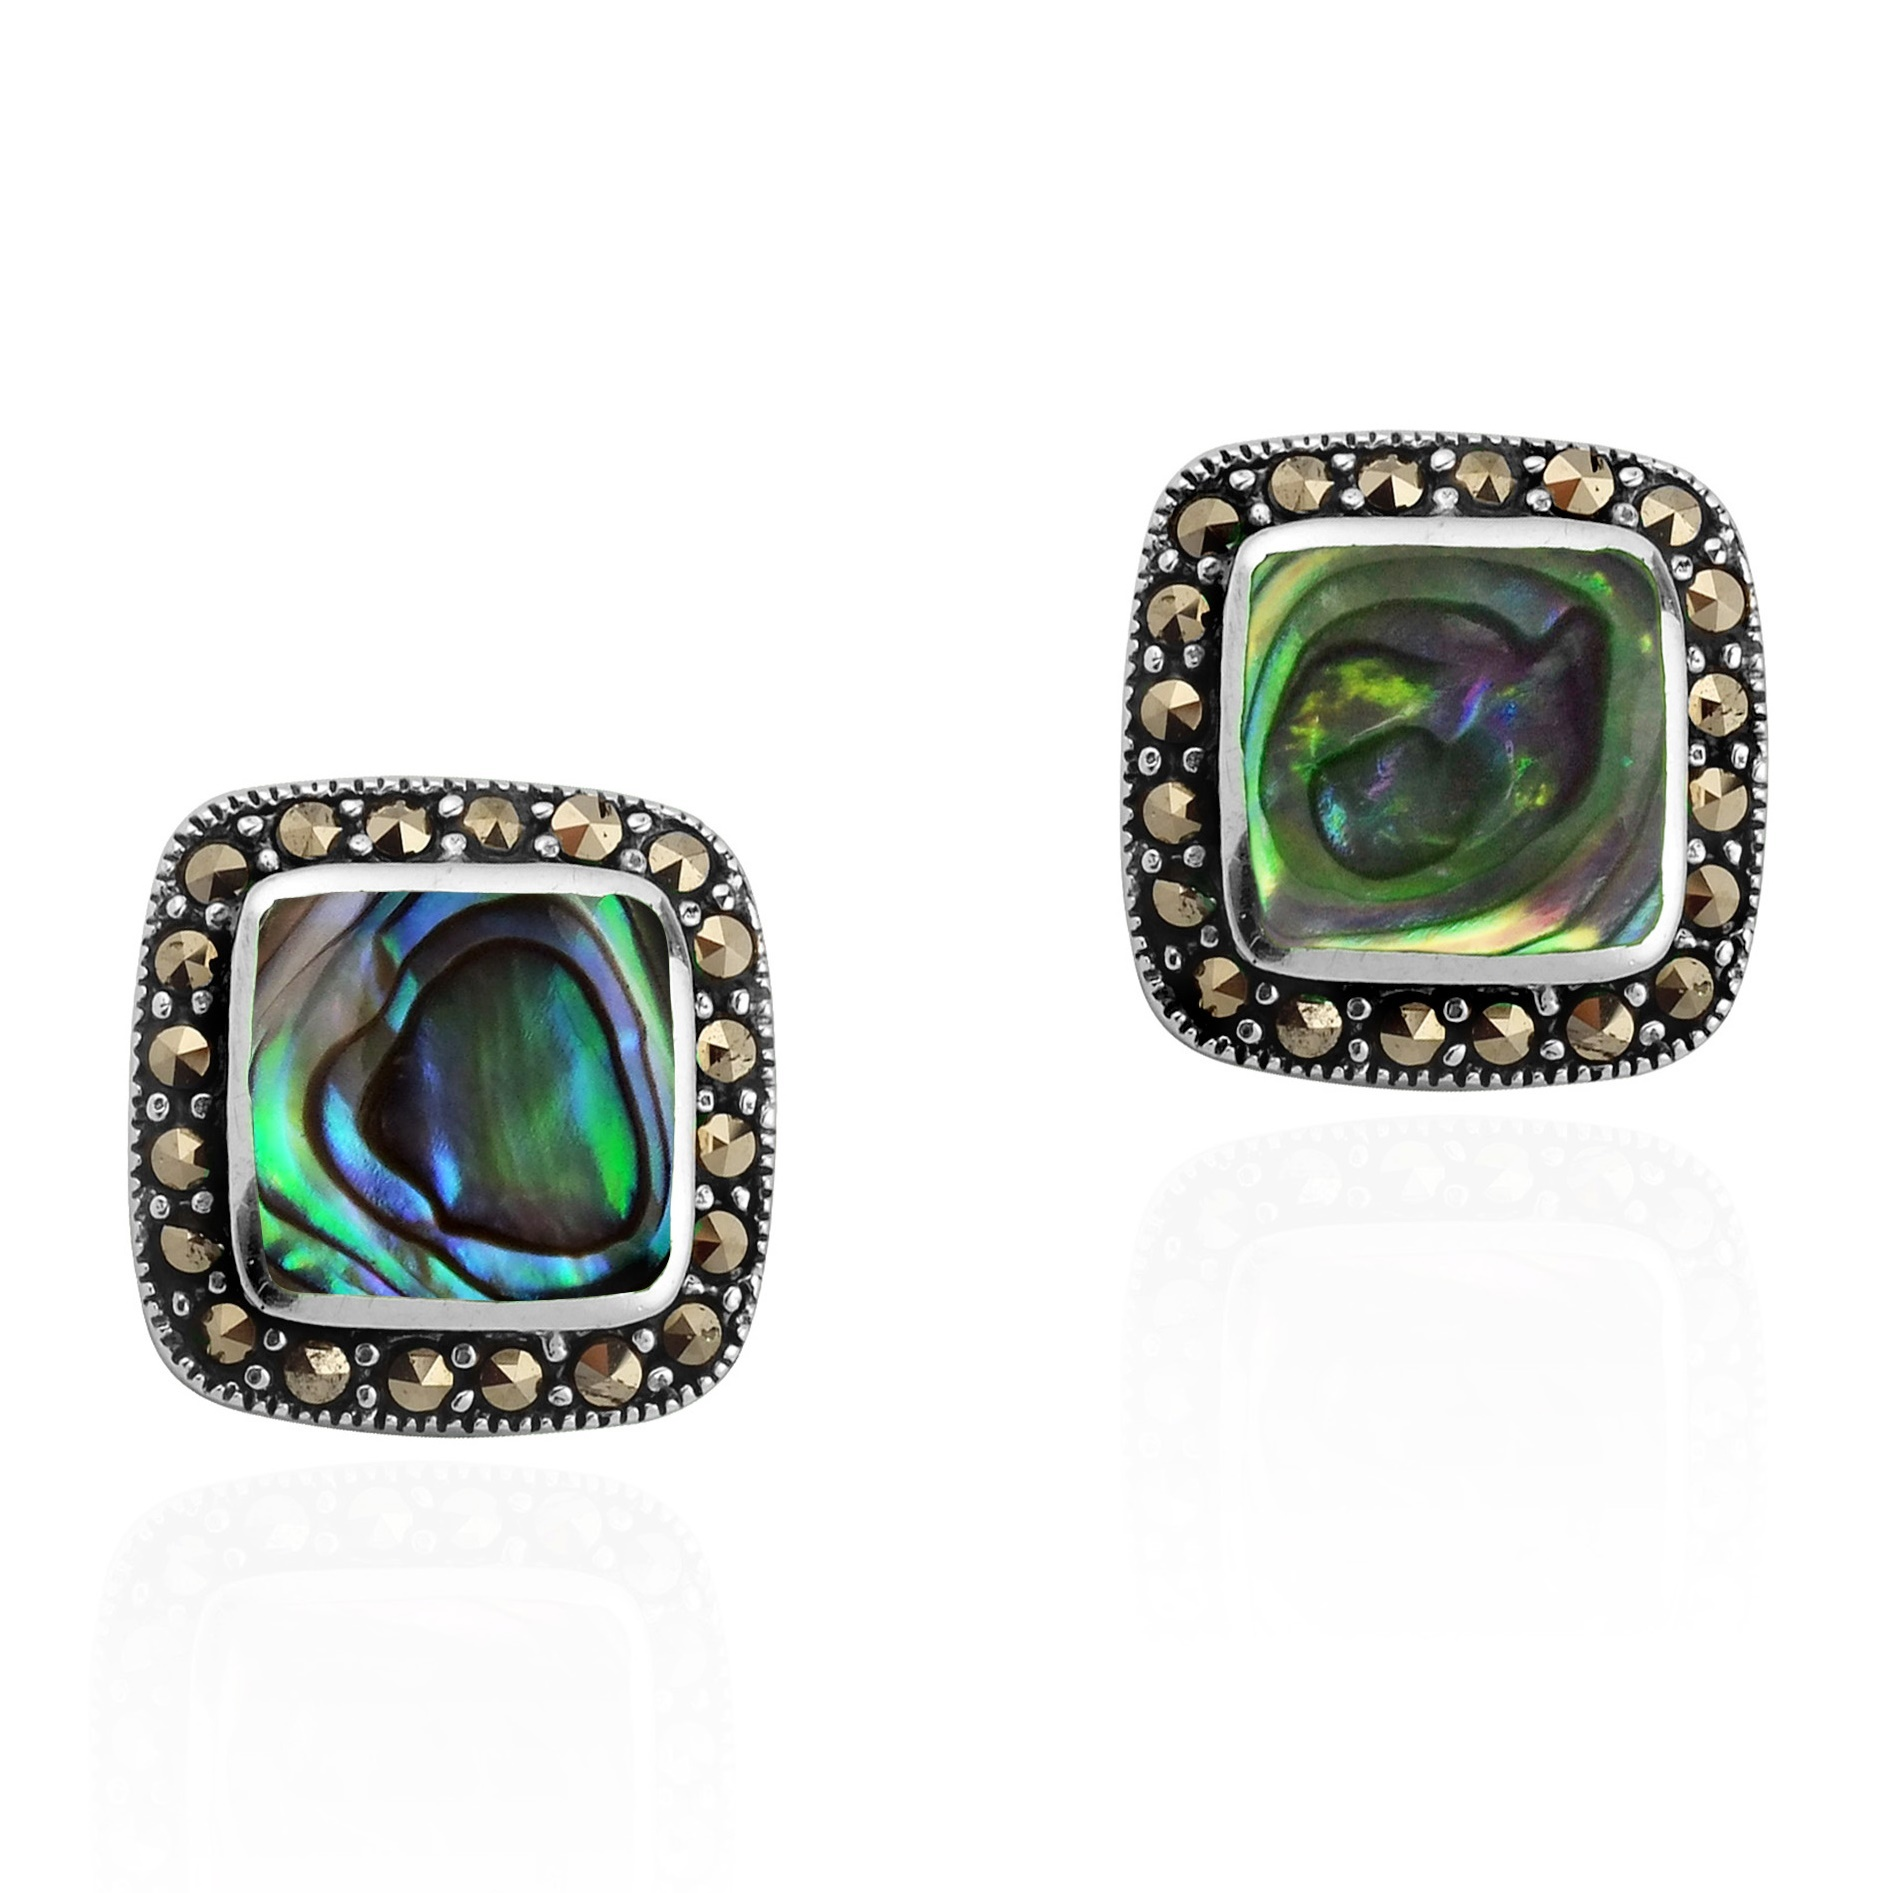 jewel double mini horn stud earring axl jacquie aiche jewelry abalone